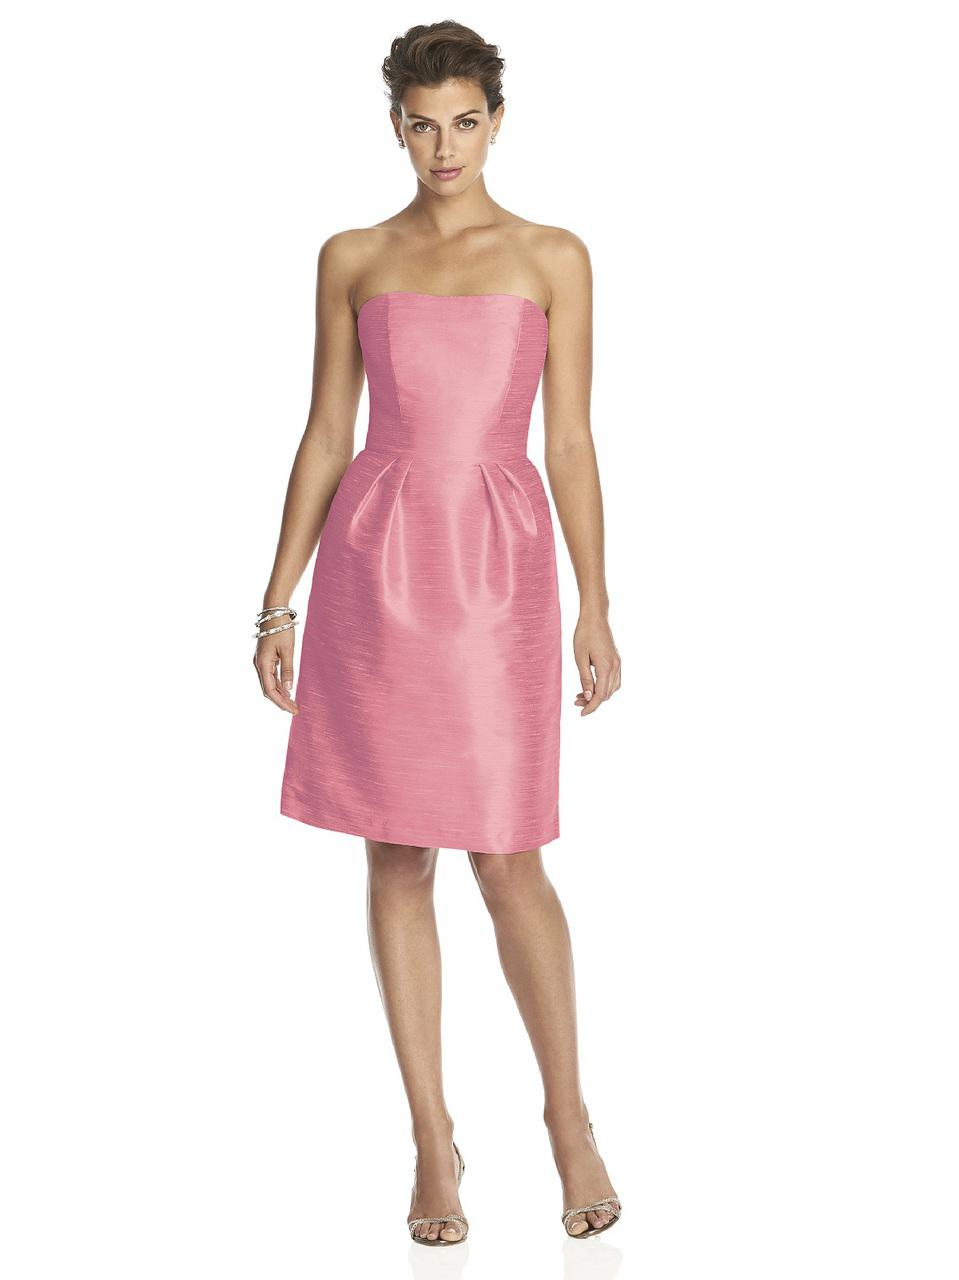 Lyst - Alfred Sung D Bridesmaid Dress In Papaya in Pink - Save 13%